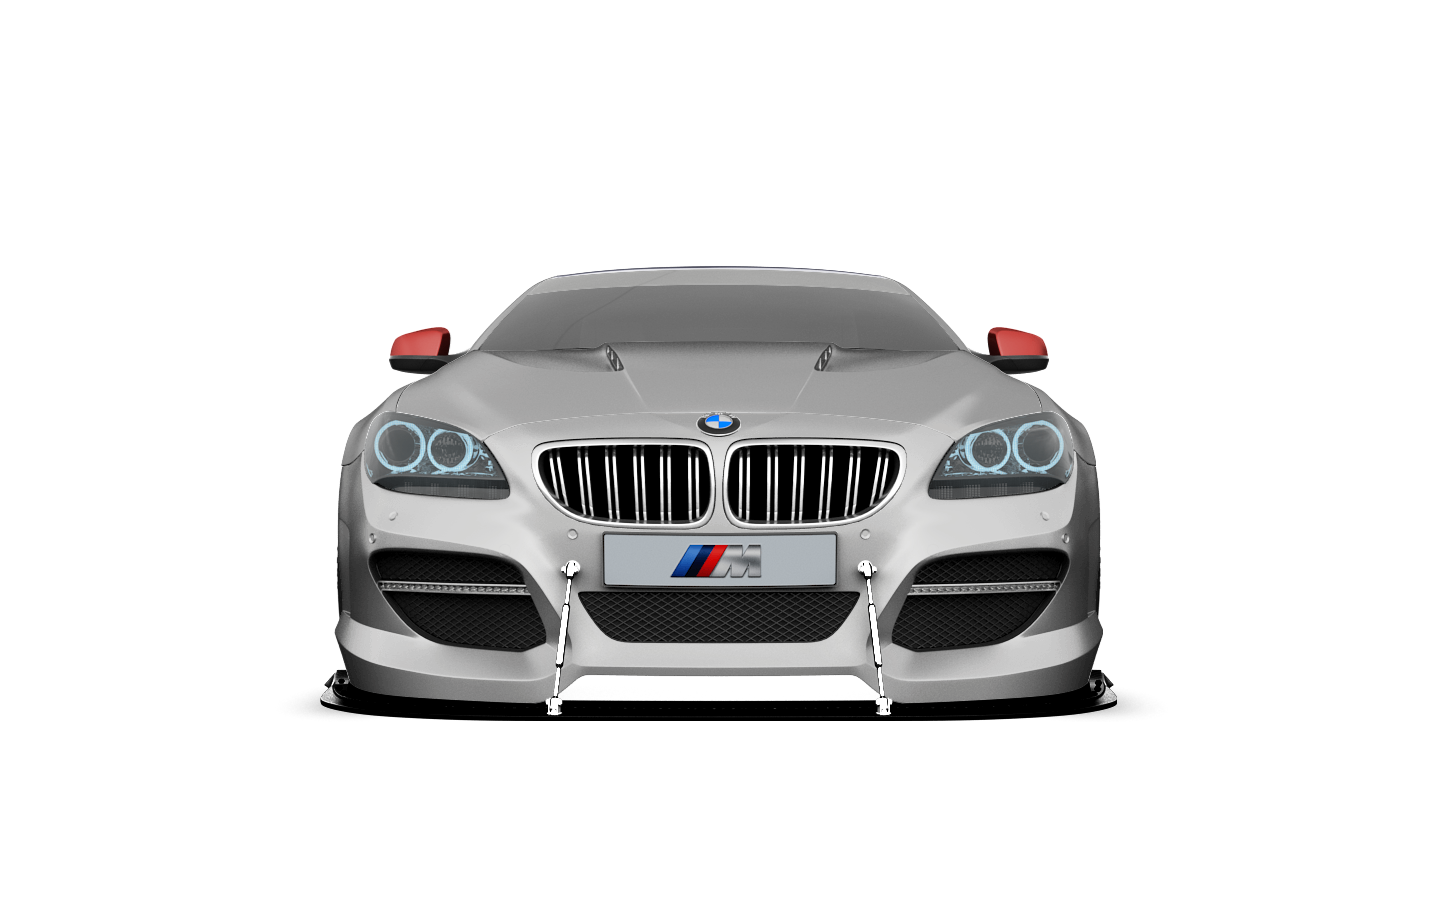 Bmw 6 series11 by ys ad